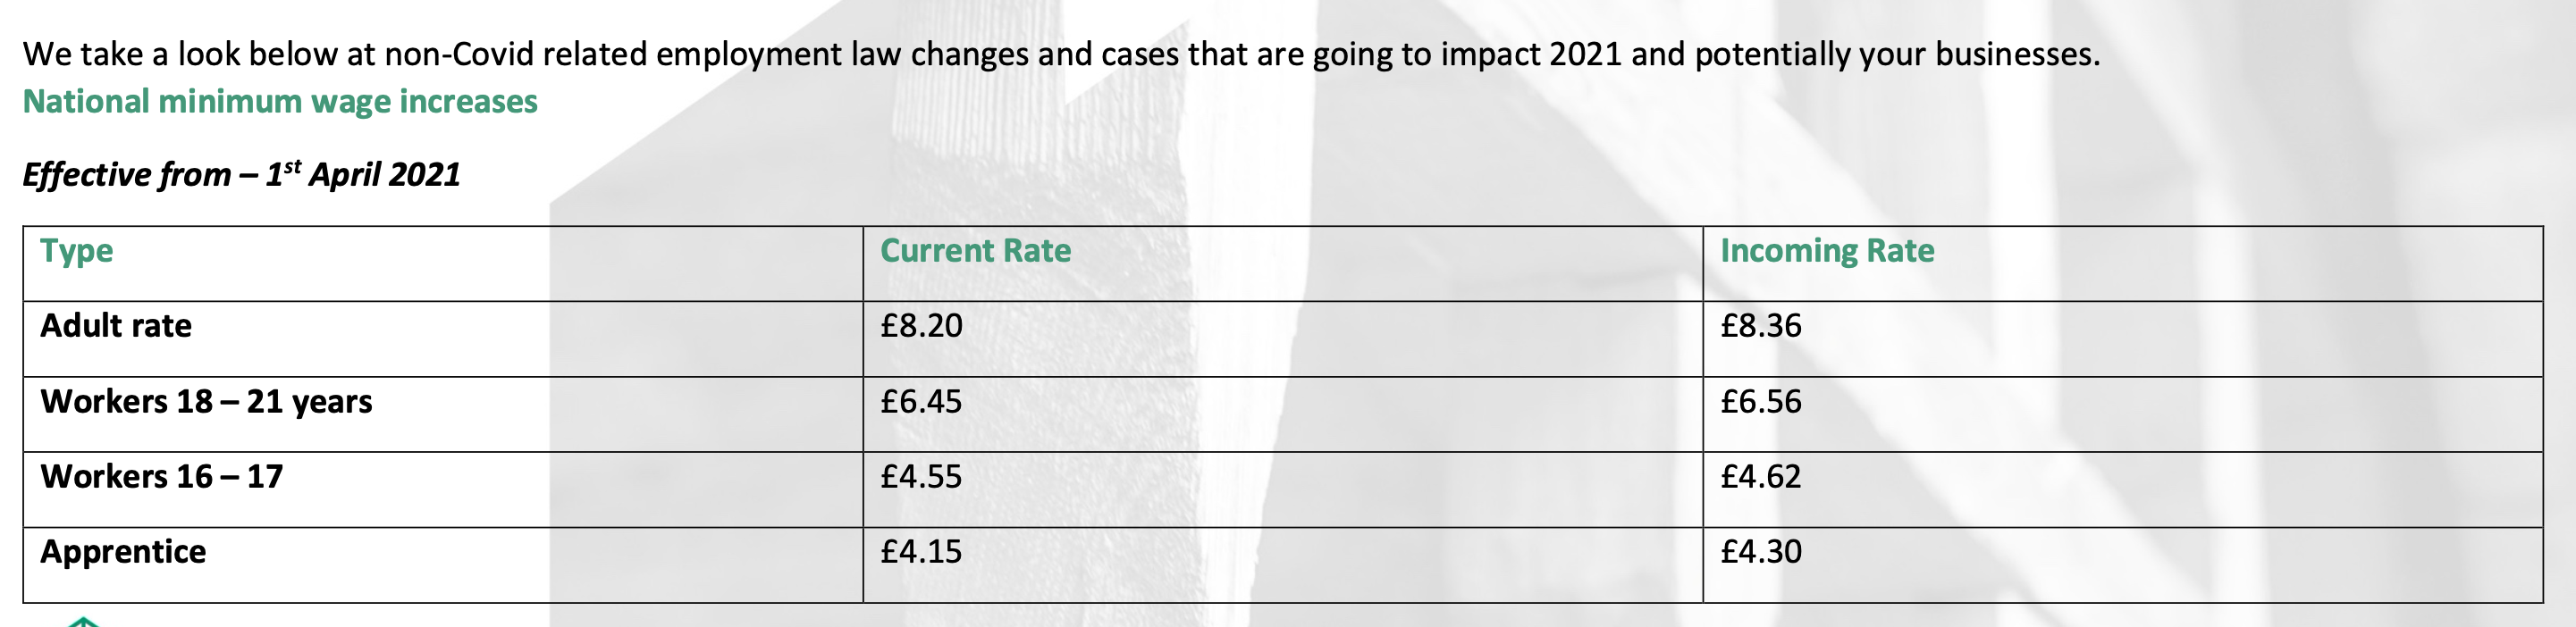 Employment Law changes and cases in 2021